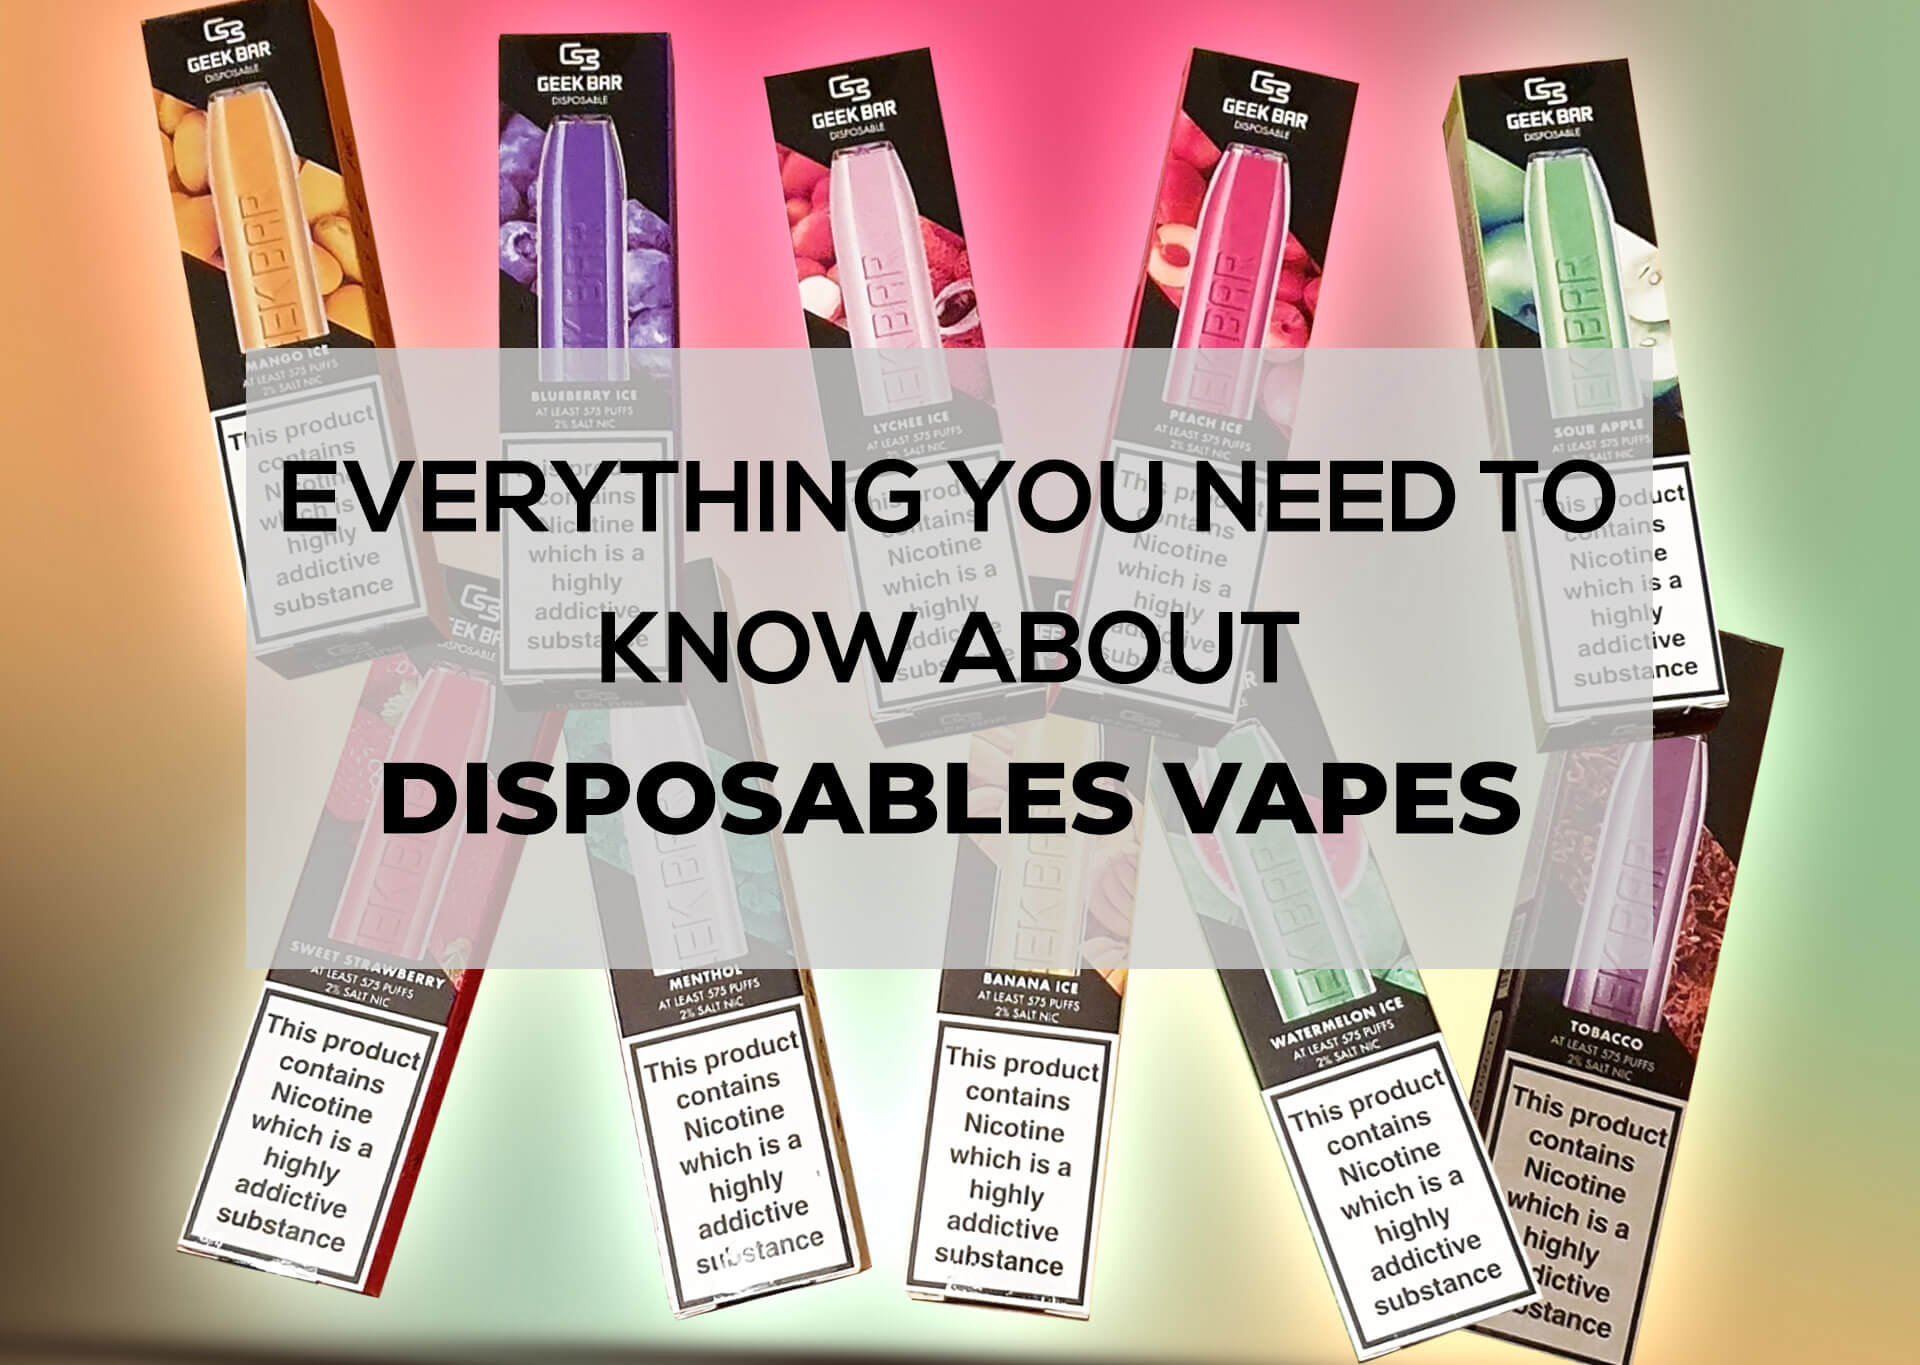 Everything-you-need-to-know-about-disposable-vapes